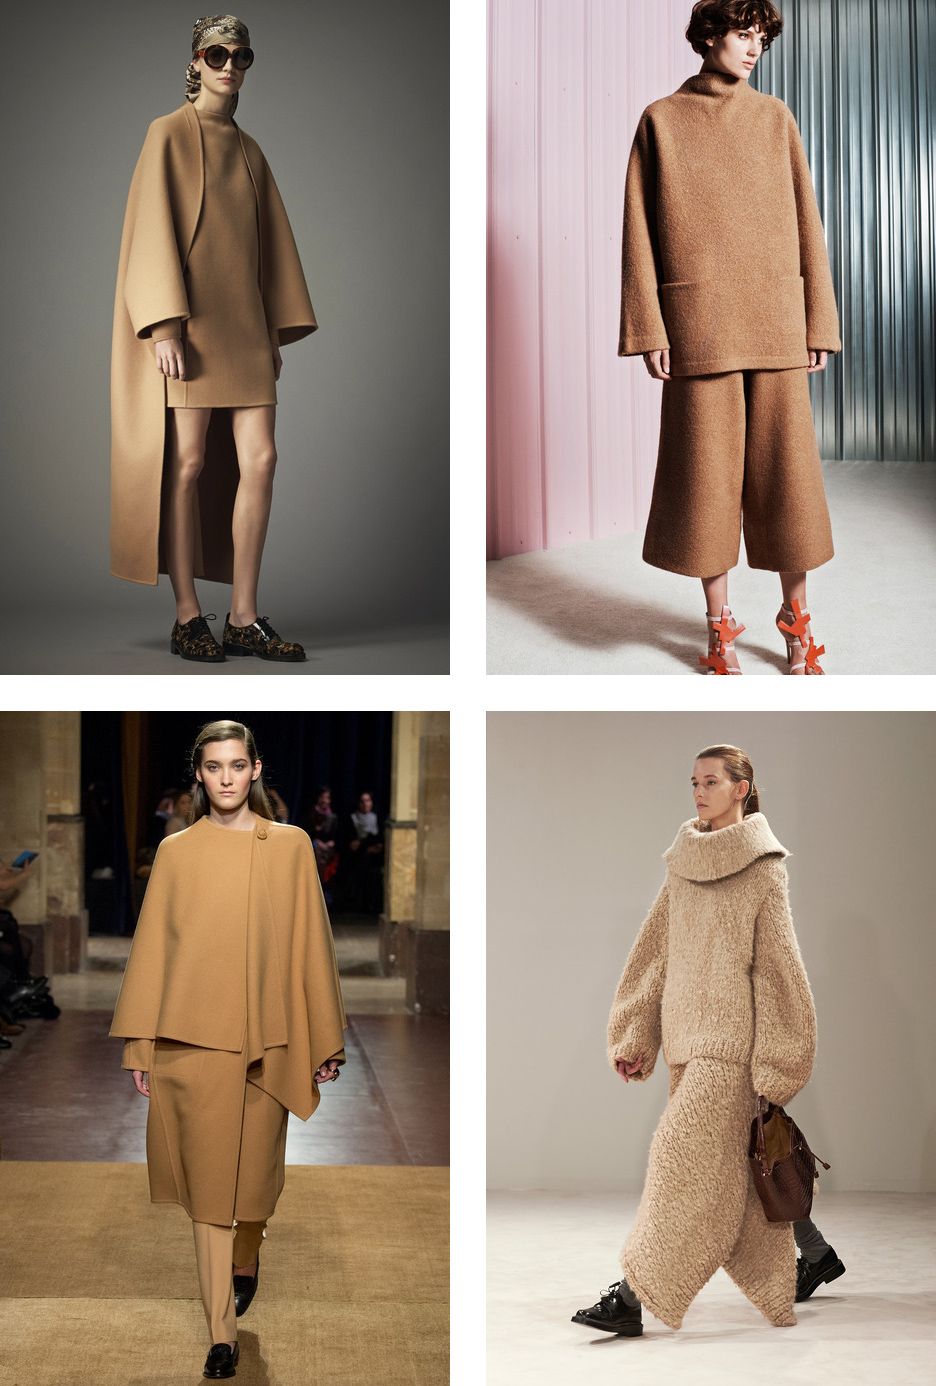 monochrome-dressing-in-camel-valentino-acne-studios-the-row-hermes-2014-desmitten